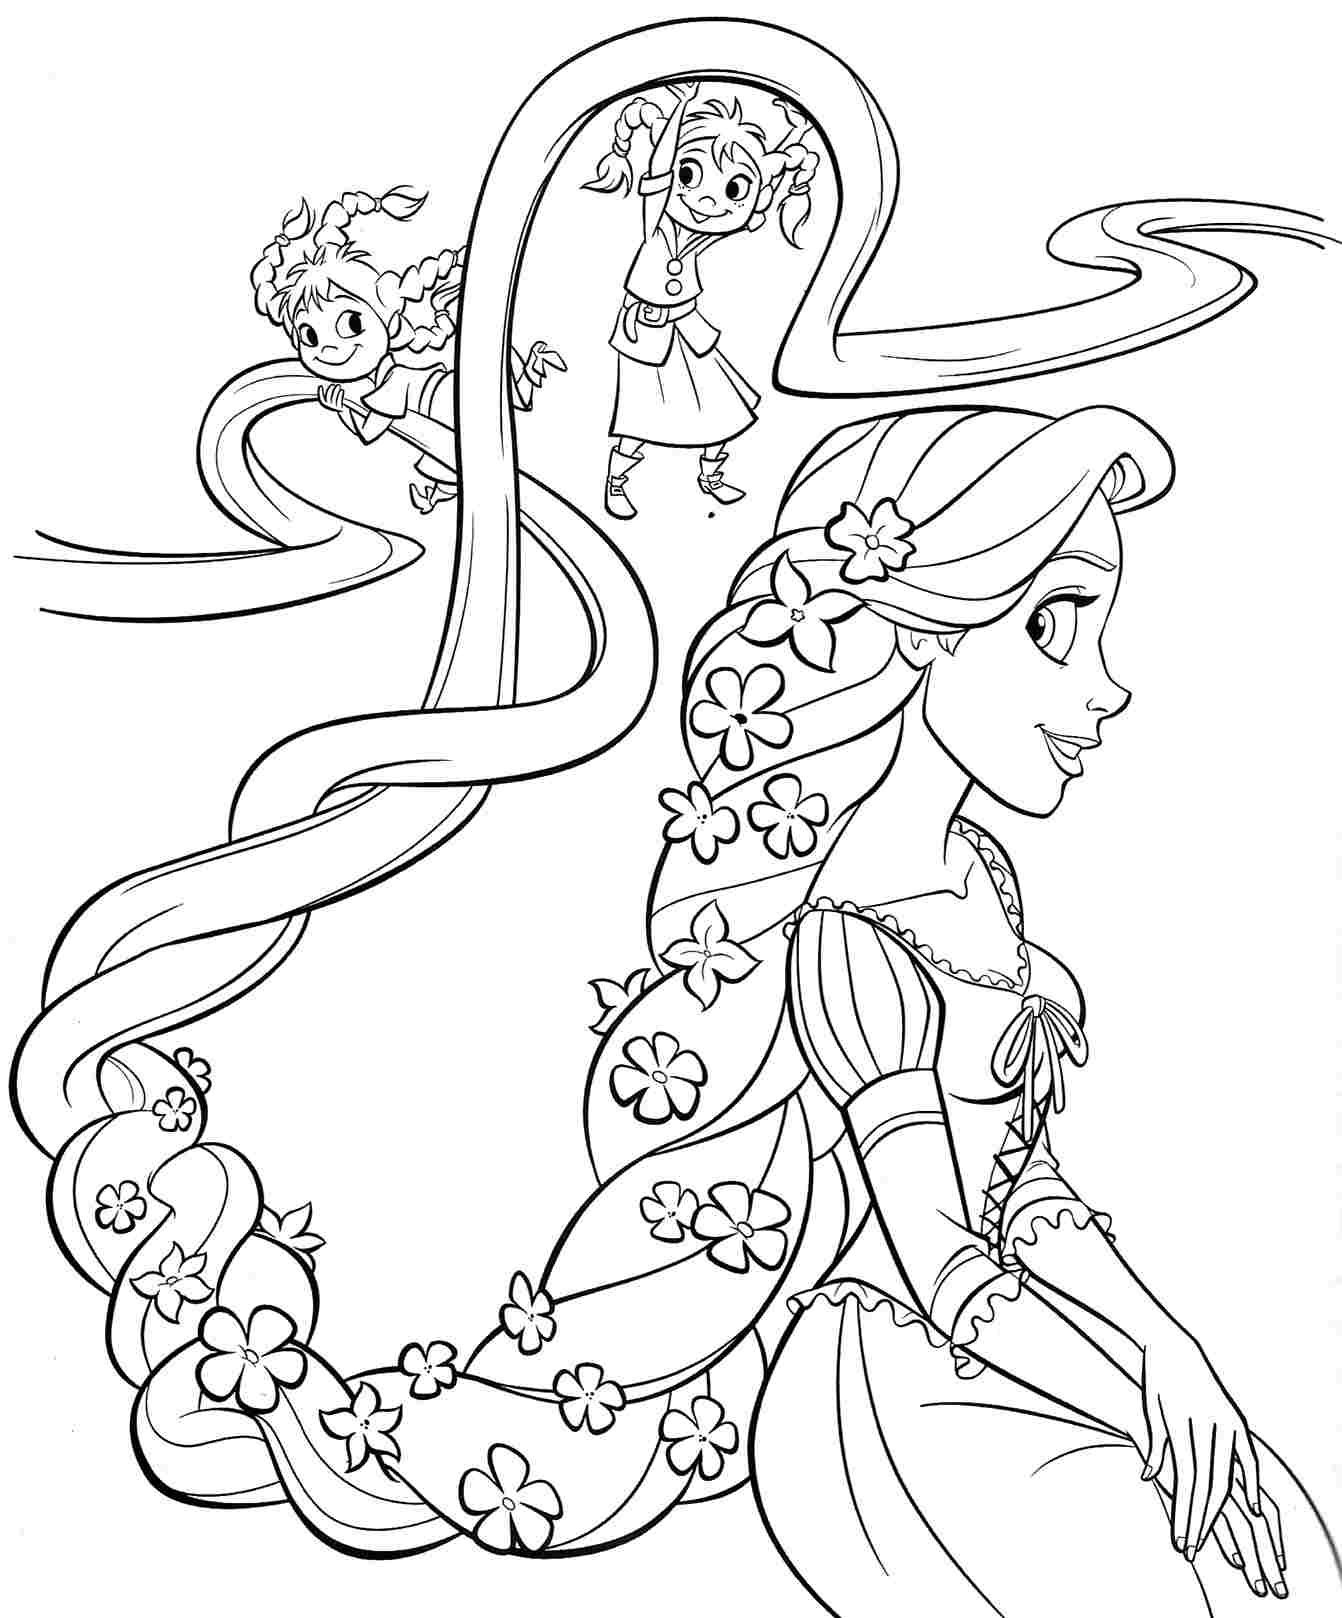 Princess house coloring pages - Printable Free Disney Princess Rapunzel Coloring Sheets For Kids